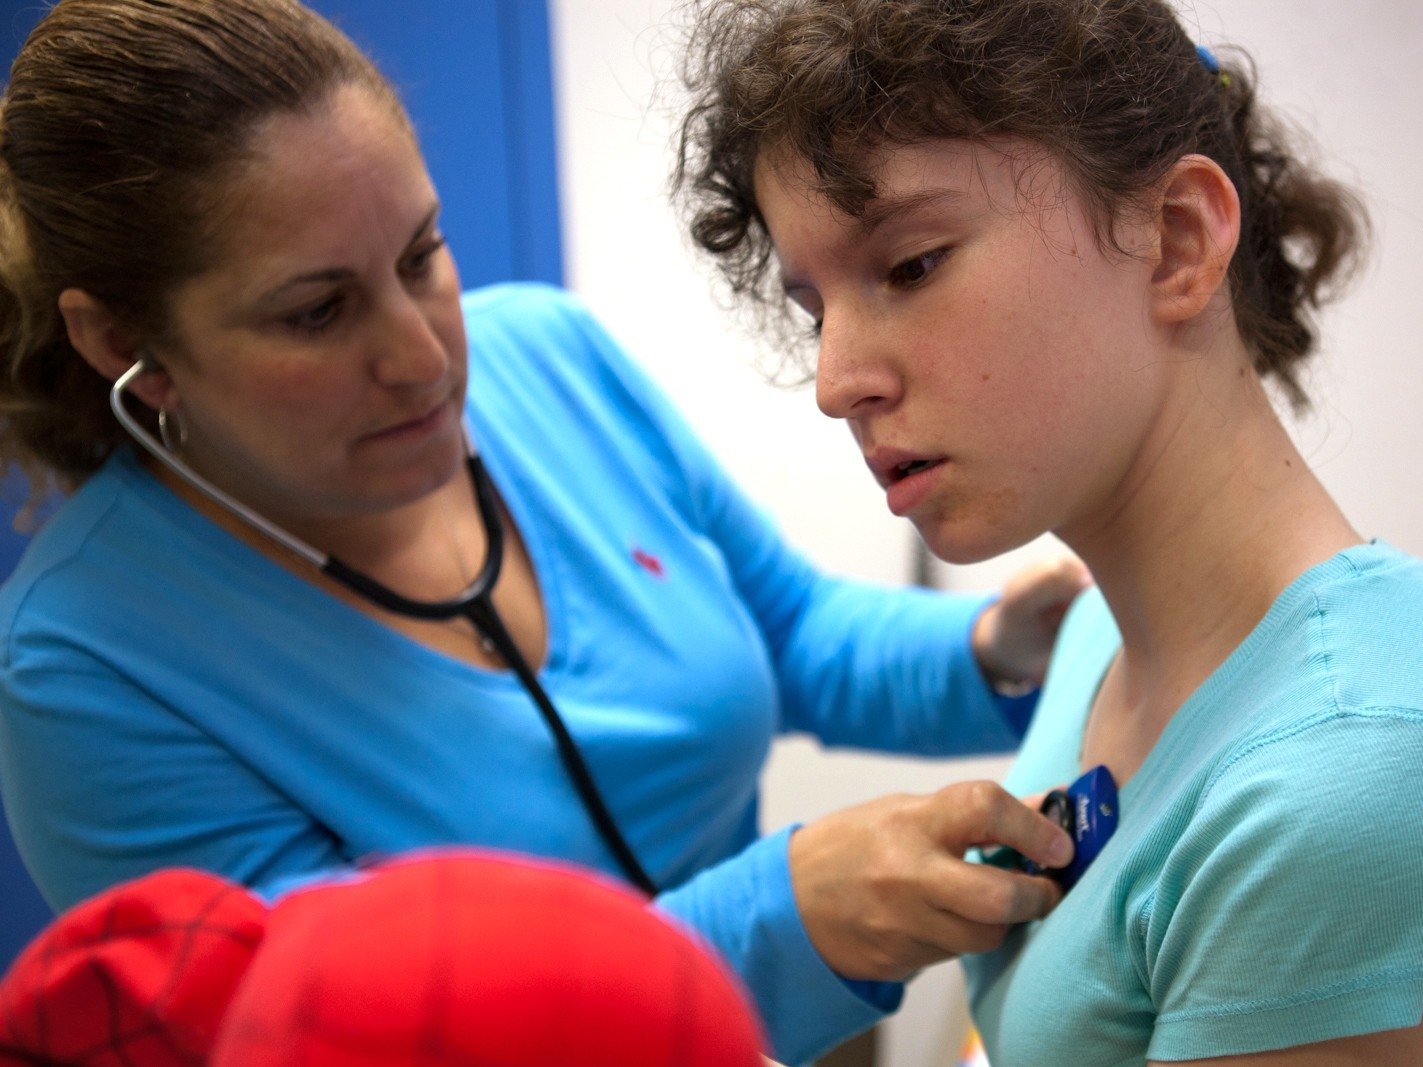 A medical professional listens to a girl's heart using a stethoscope.